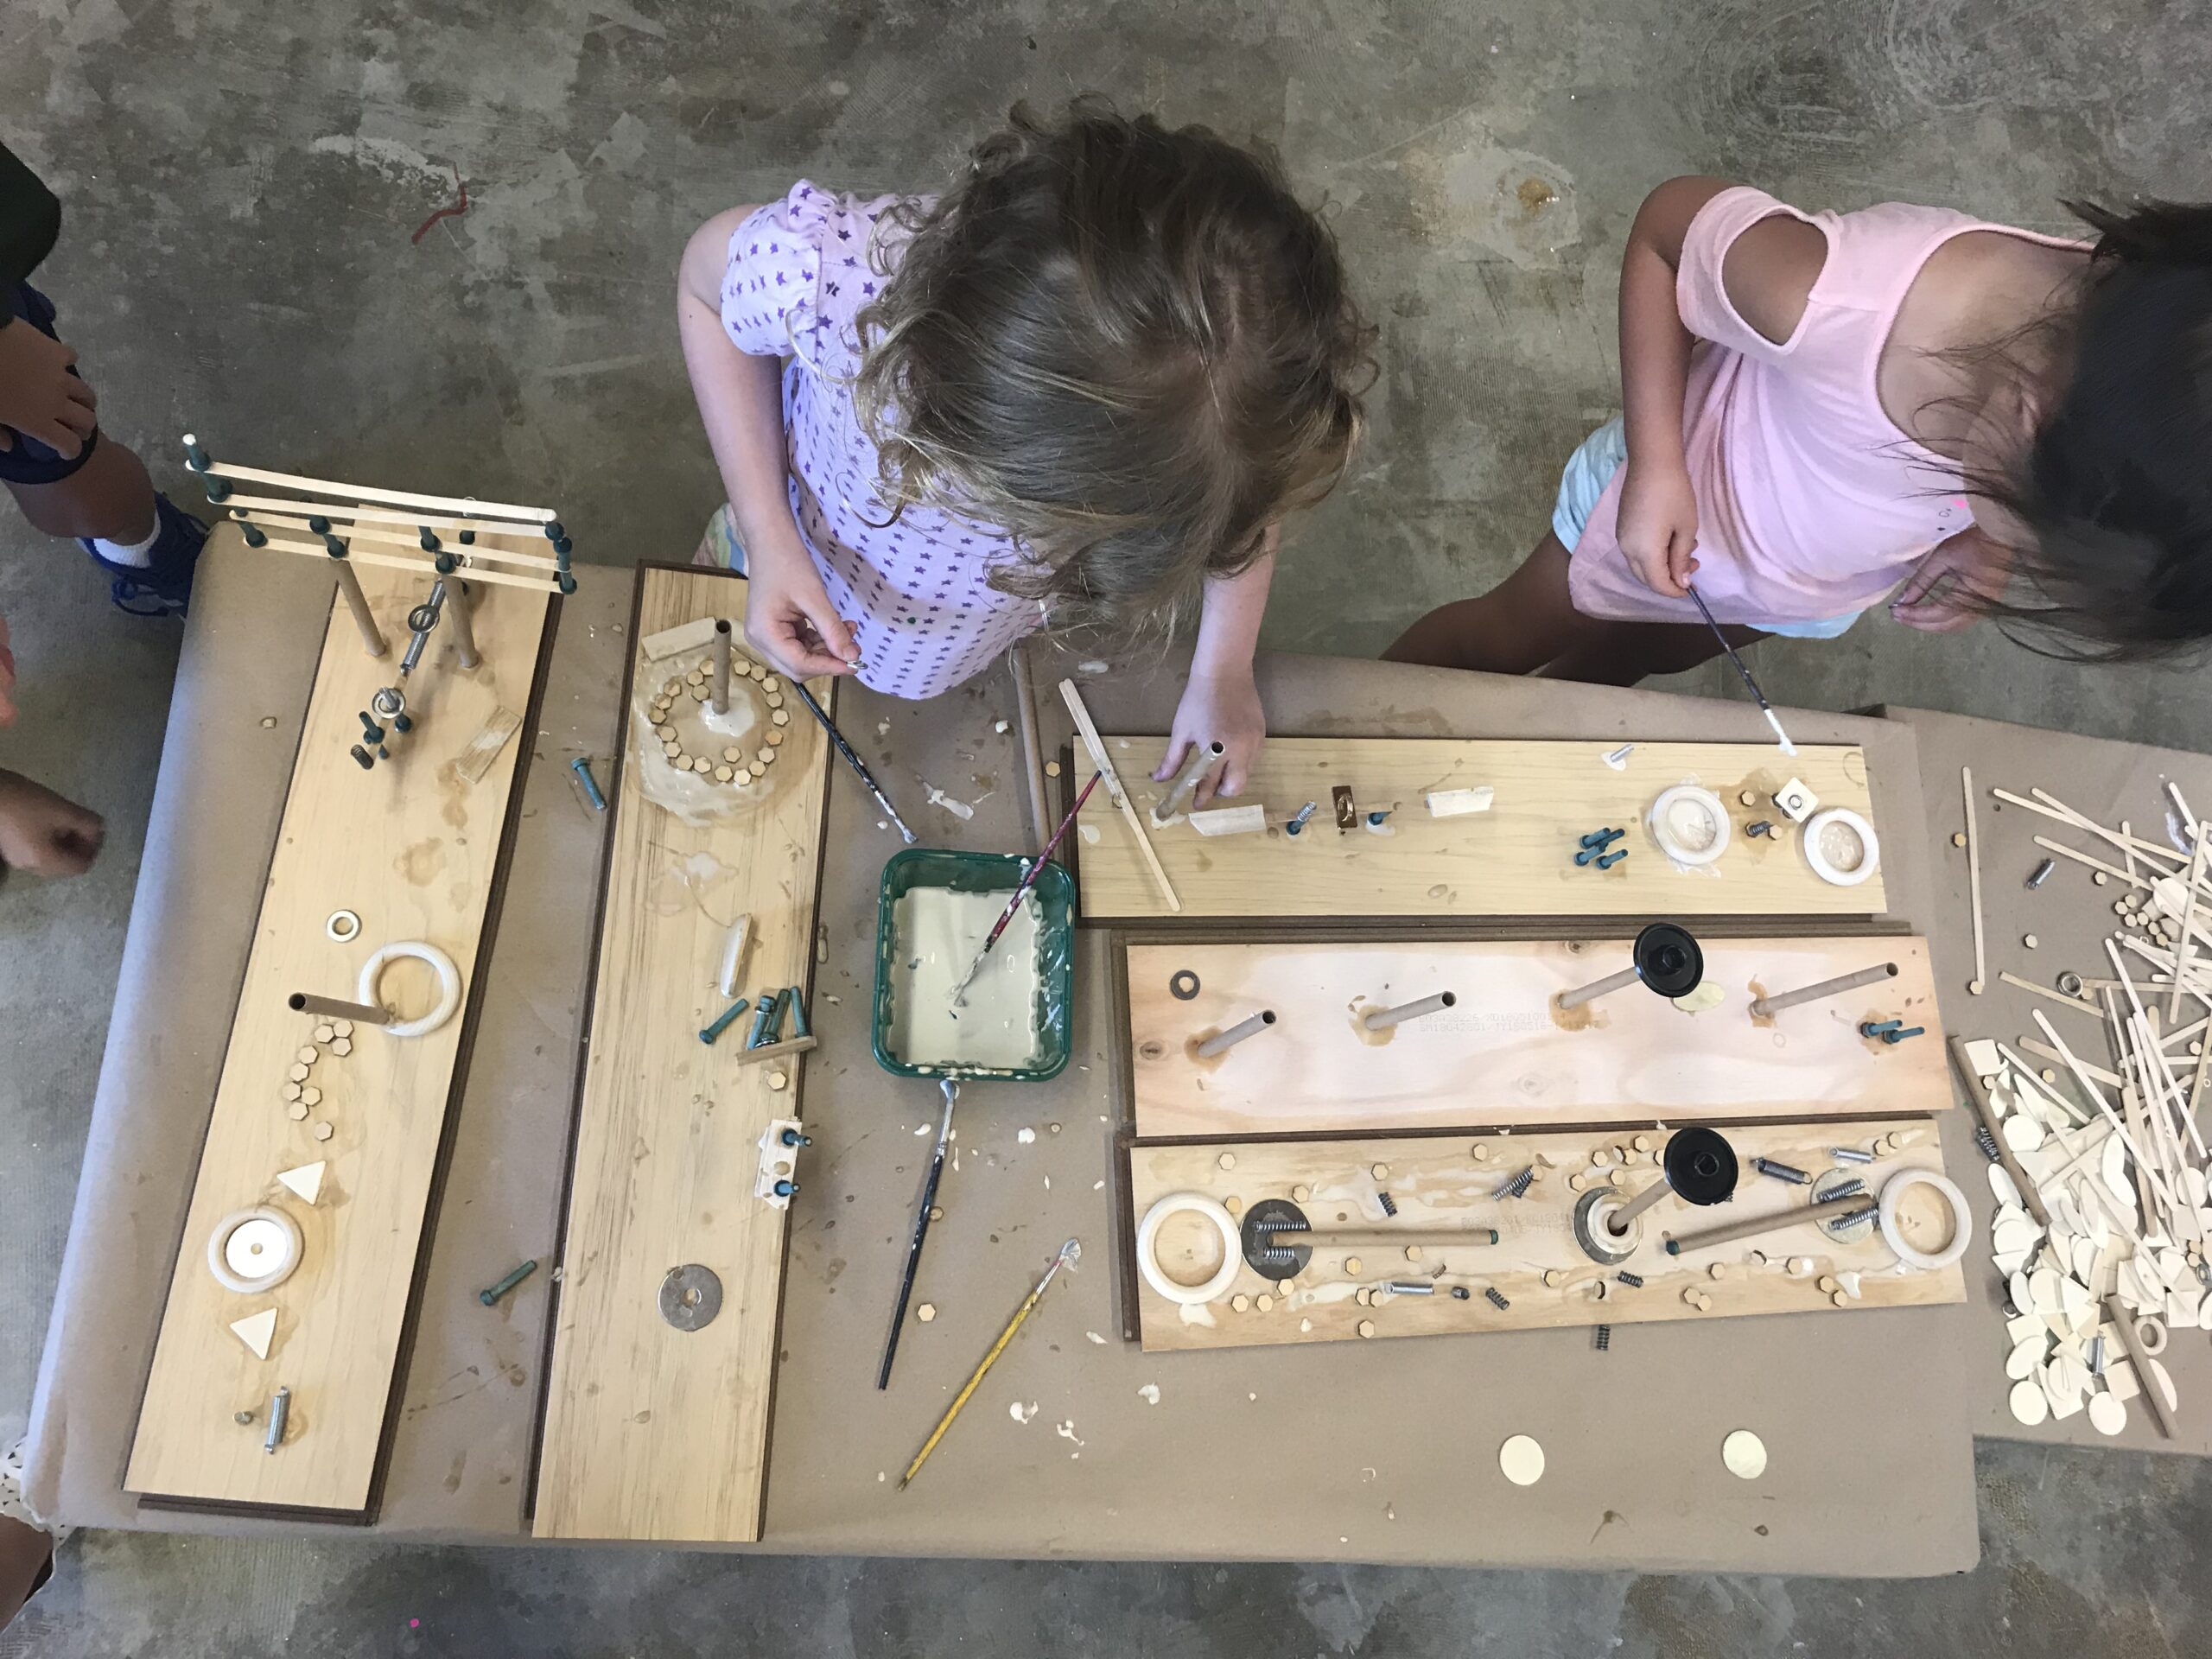 children work on a project with wood and paint